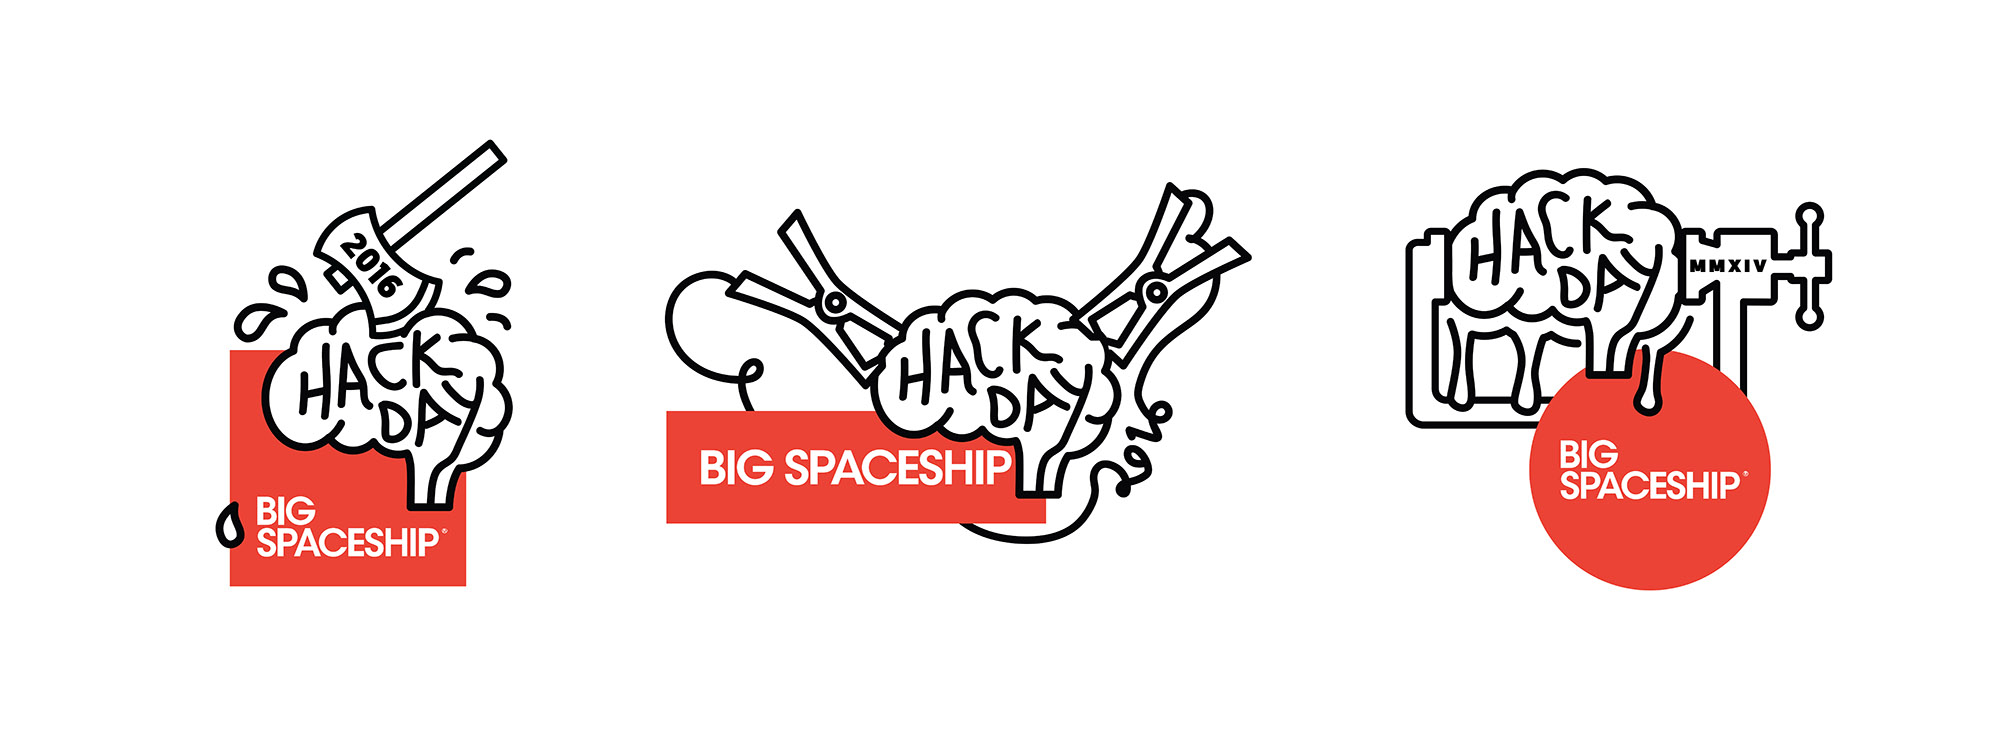 Logo Package for Big Spaceship's 2016 Hack Day